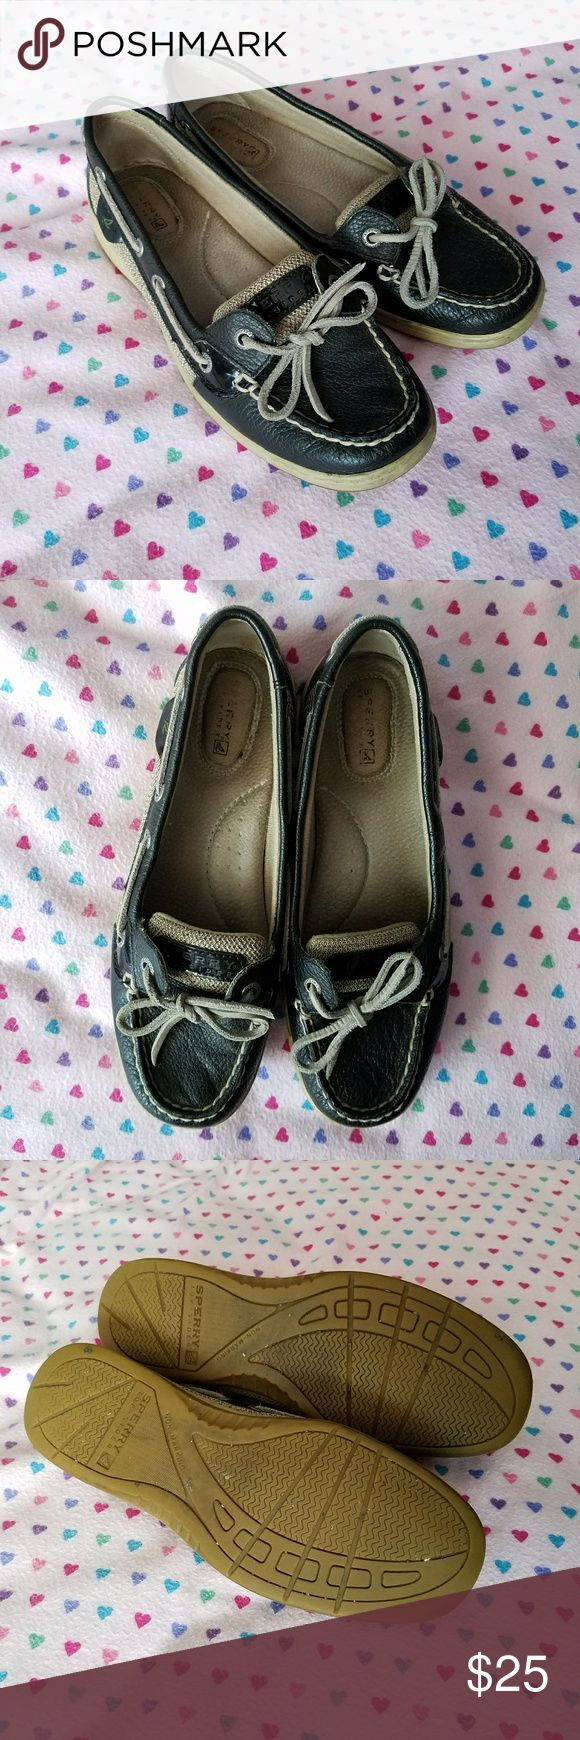 Sperry Top Wider - Navy Blue Boat Shoes Worn a few times. They don't fit my wide feet. In very good condition. Sperry Top-Sider Shoes Flats & Loafers